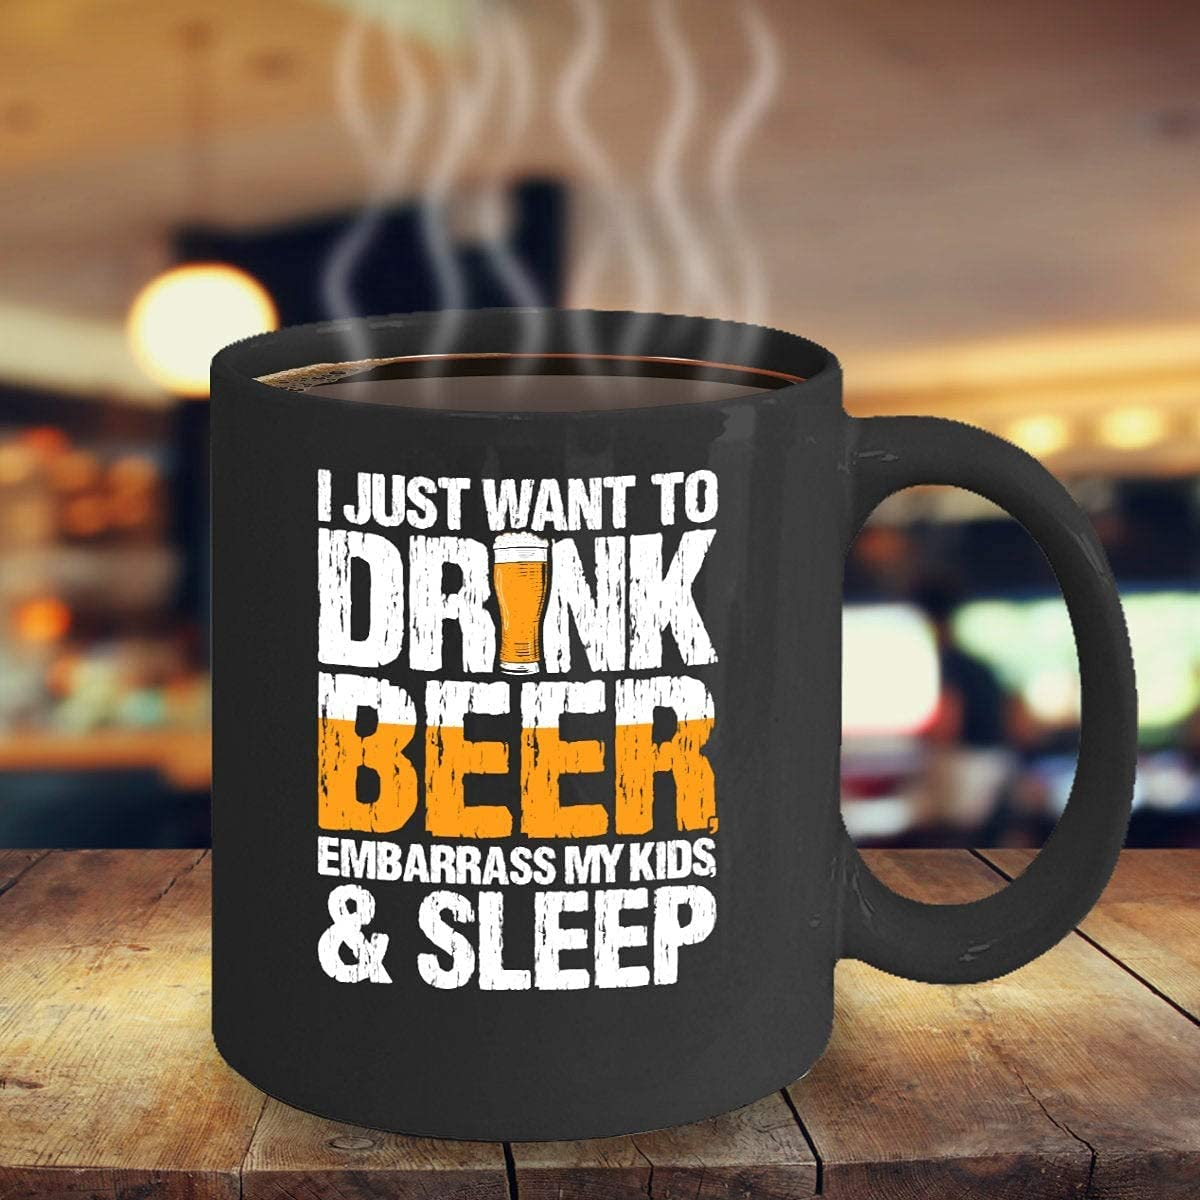 Award Beer Lover Gift Birthday Sarcastic I Just Cof TO Want Selling Drink